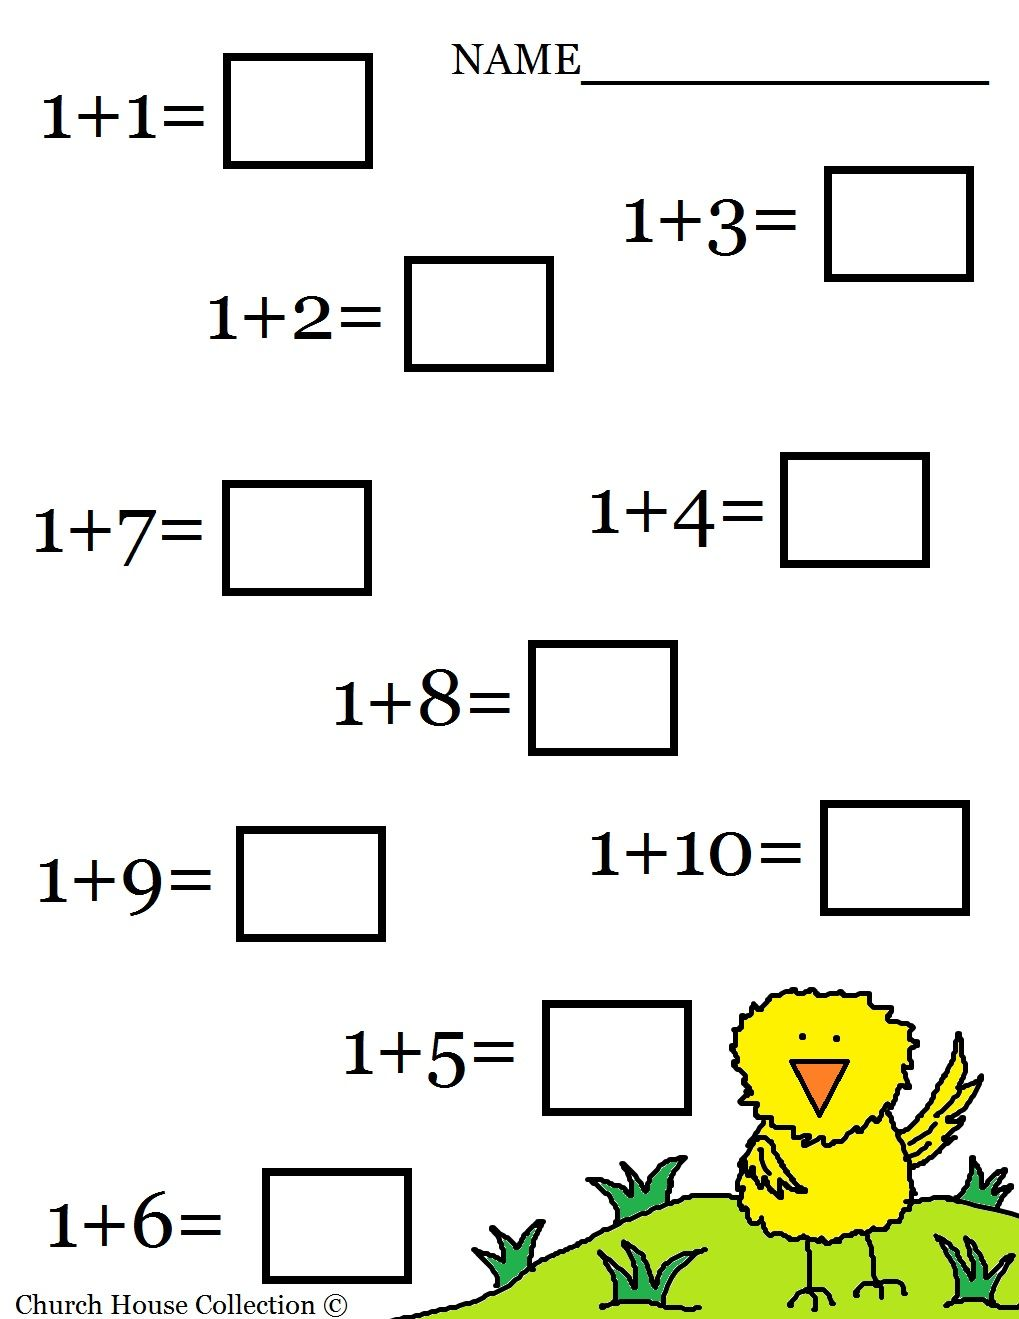 Aldiablosus  Surprising  Images About Worksheets  Math On Pinterest  Math Sheets  With Outstanding  Images About Worksheets  Math On Pinterest  Math Sheets Math Worksheets For Kindergarten And Simple Addition With Astonishing Short A Sound Worksheets Also Identifying Fractions Worksheet In Addition Fractions Practice Worksheets And Structure Of Atoms Worksheet As Well As Primary Vs Secondary Sources Worksheet Additionally Double Digit Addition Worksheet From Pinterestcom With Aldiablosus  Outstanding  Images About Worksheets  Math On Pinterest  Math Sheets  With Astonishing  Images About Worksheets  Math On Pinterest  Math Sheets Math Worksheets For Kindergarten And Simple Addition And Surprising Short A Sound Worksheets Also Identifying Fractions Worksheet In Addition Fractions Practice Worksheets From Pinterestcom